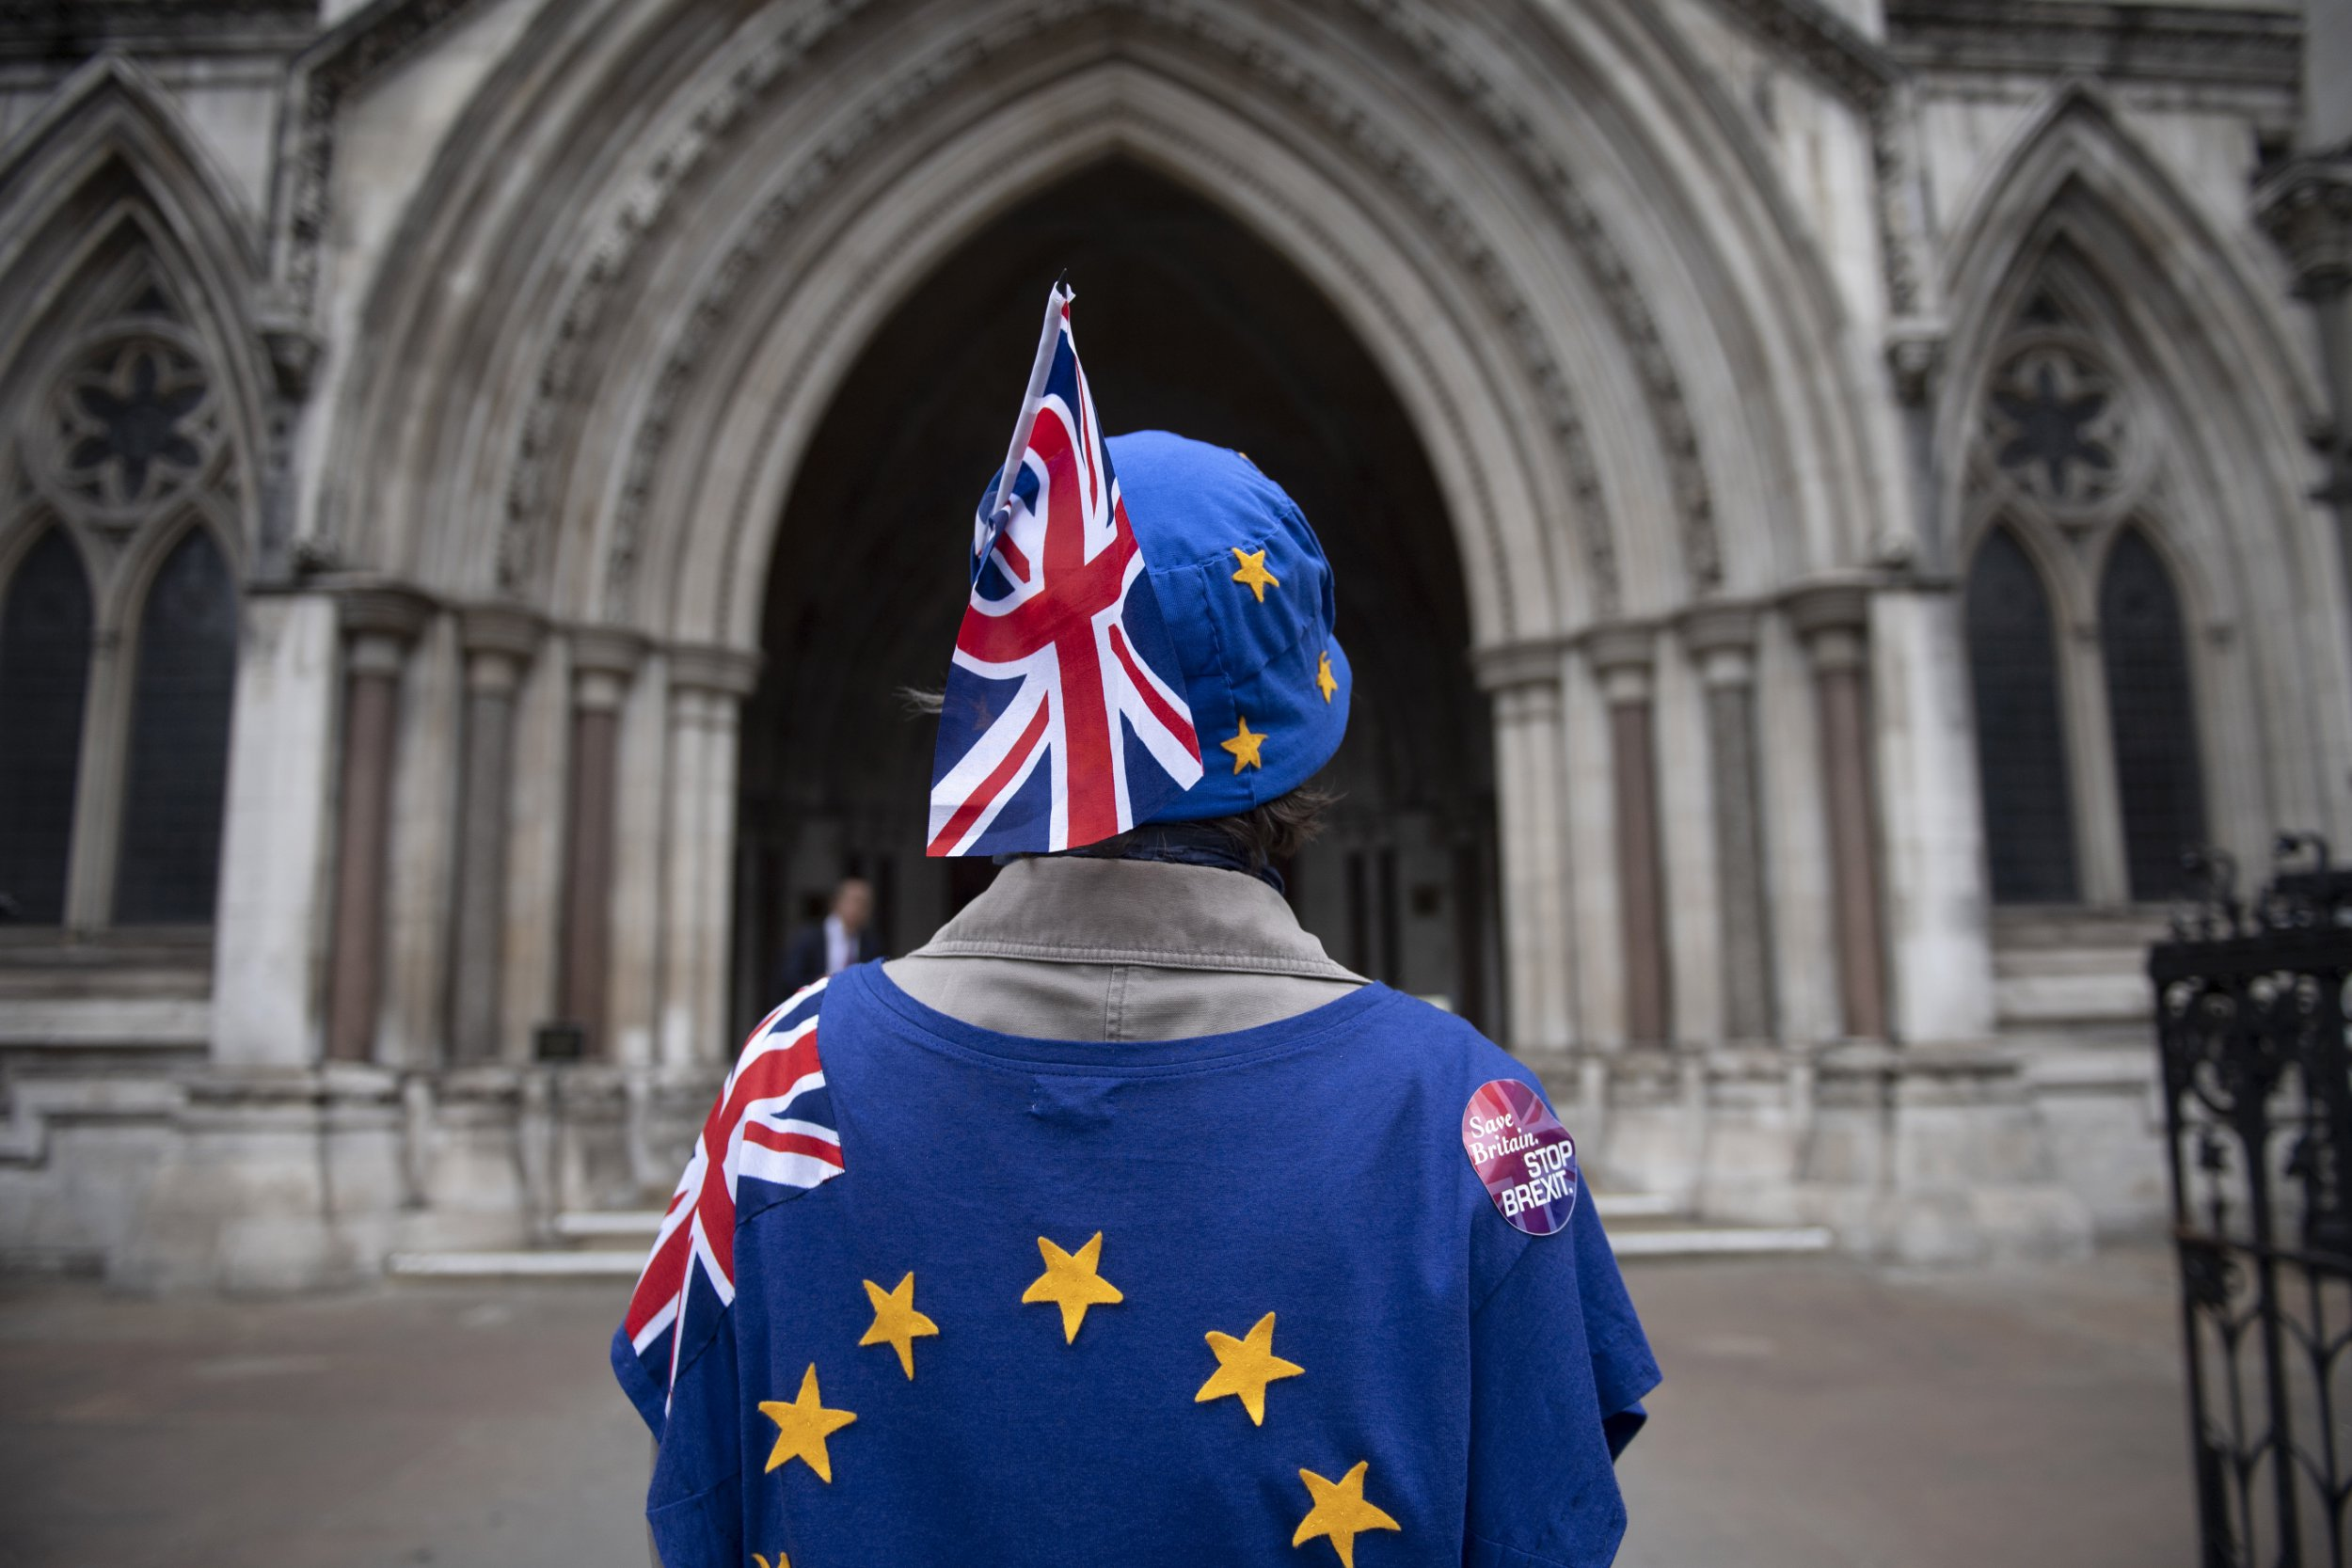 epa06802078 Anti-Brexit campaigners take part in a protest outside the High Court, London, 12 June 2018. The campaigners have launched a legal bid to challenge the legality of Article 50 in an attempt to halt Britain leaving the European Union. EPA/WILL OLIVER